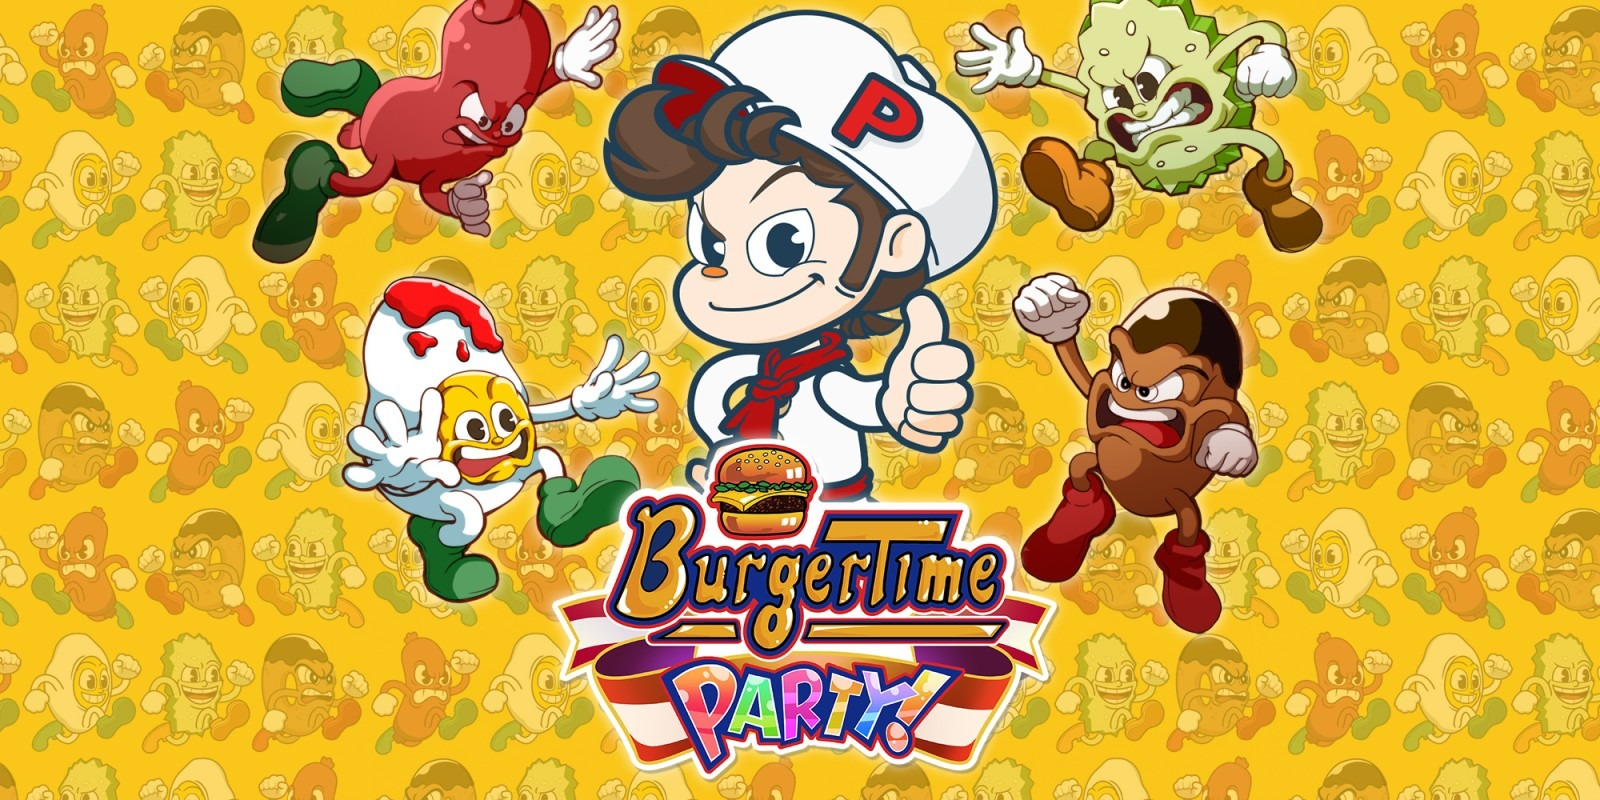 BurgerTime Party stats facts